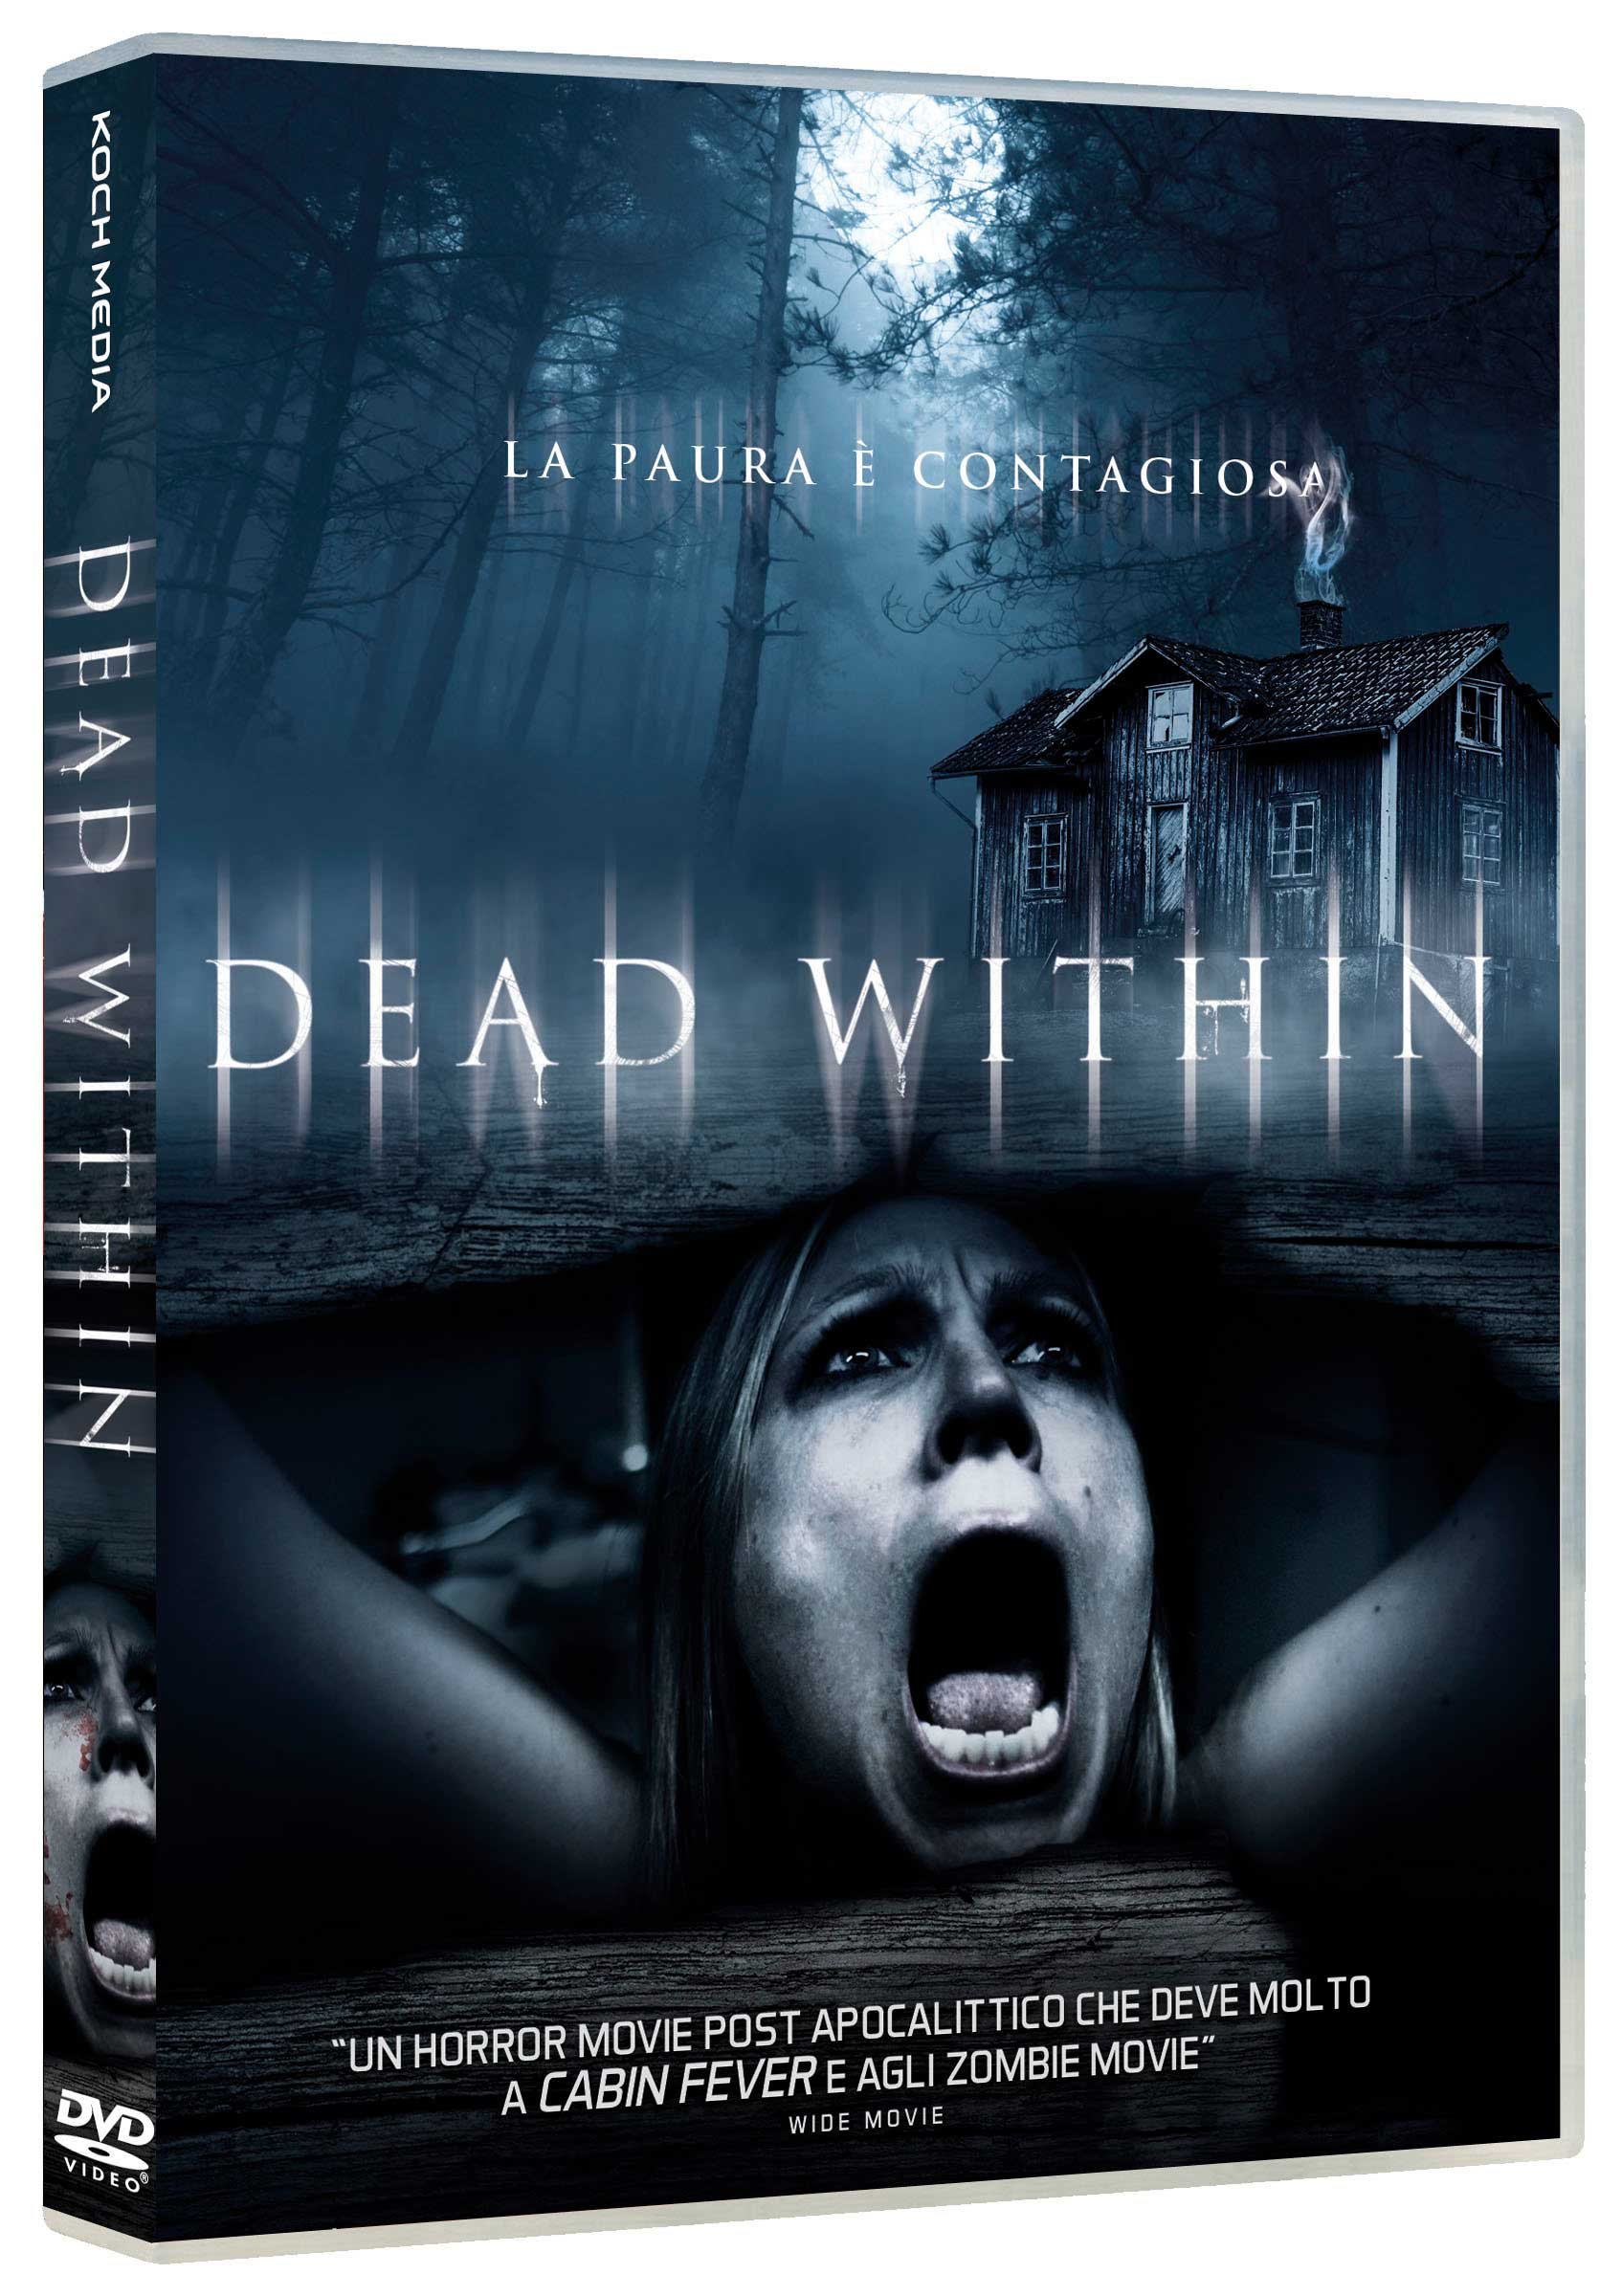 DEAD WITHIN (DVD)